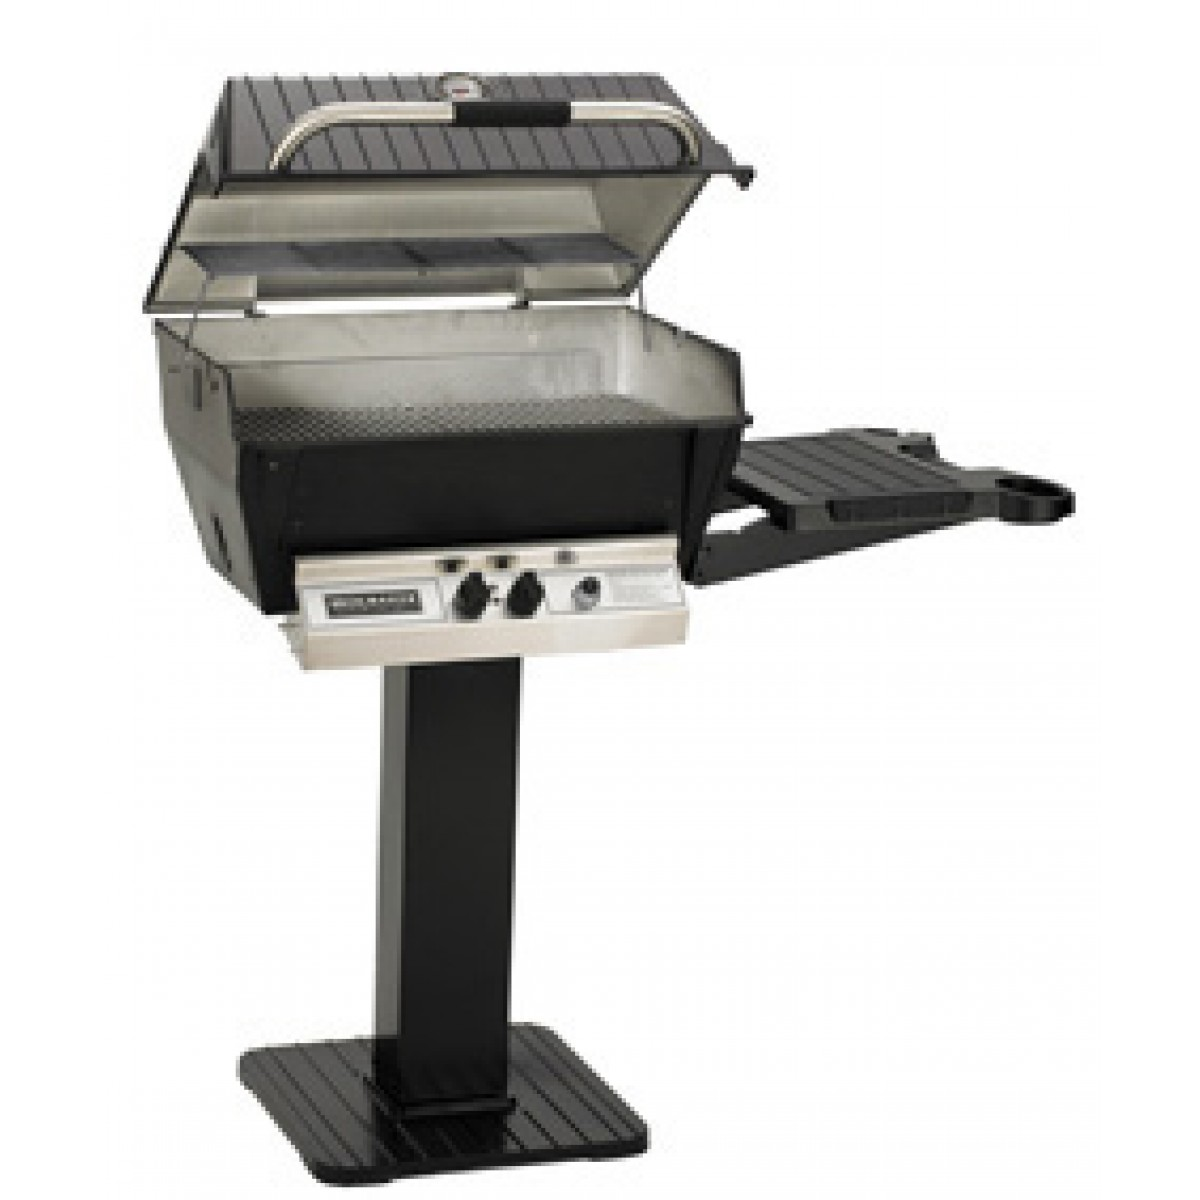 Broilmaster Deluxe H3pk3n Ng Barbecue Grill